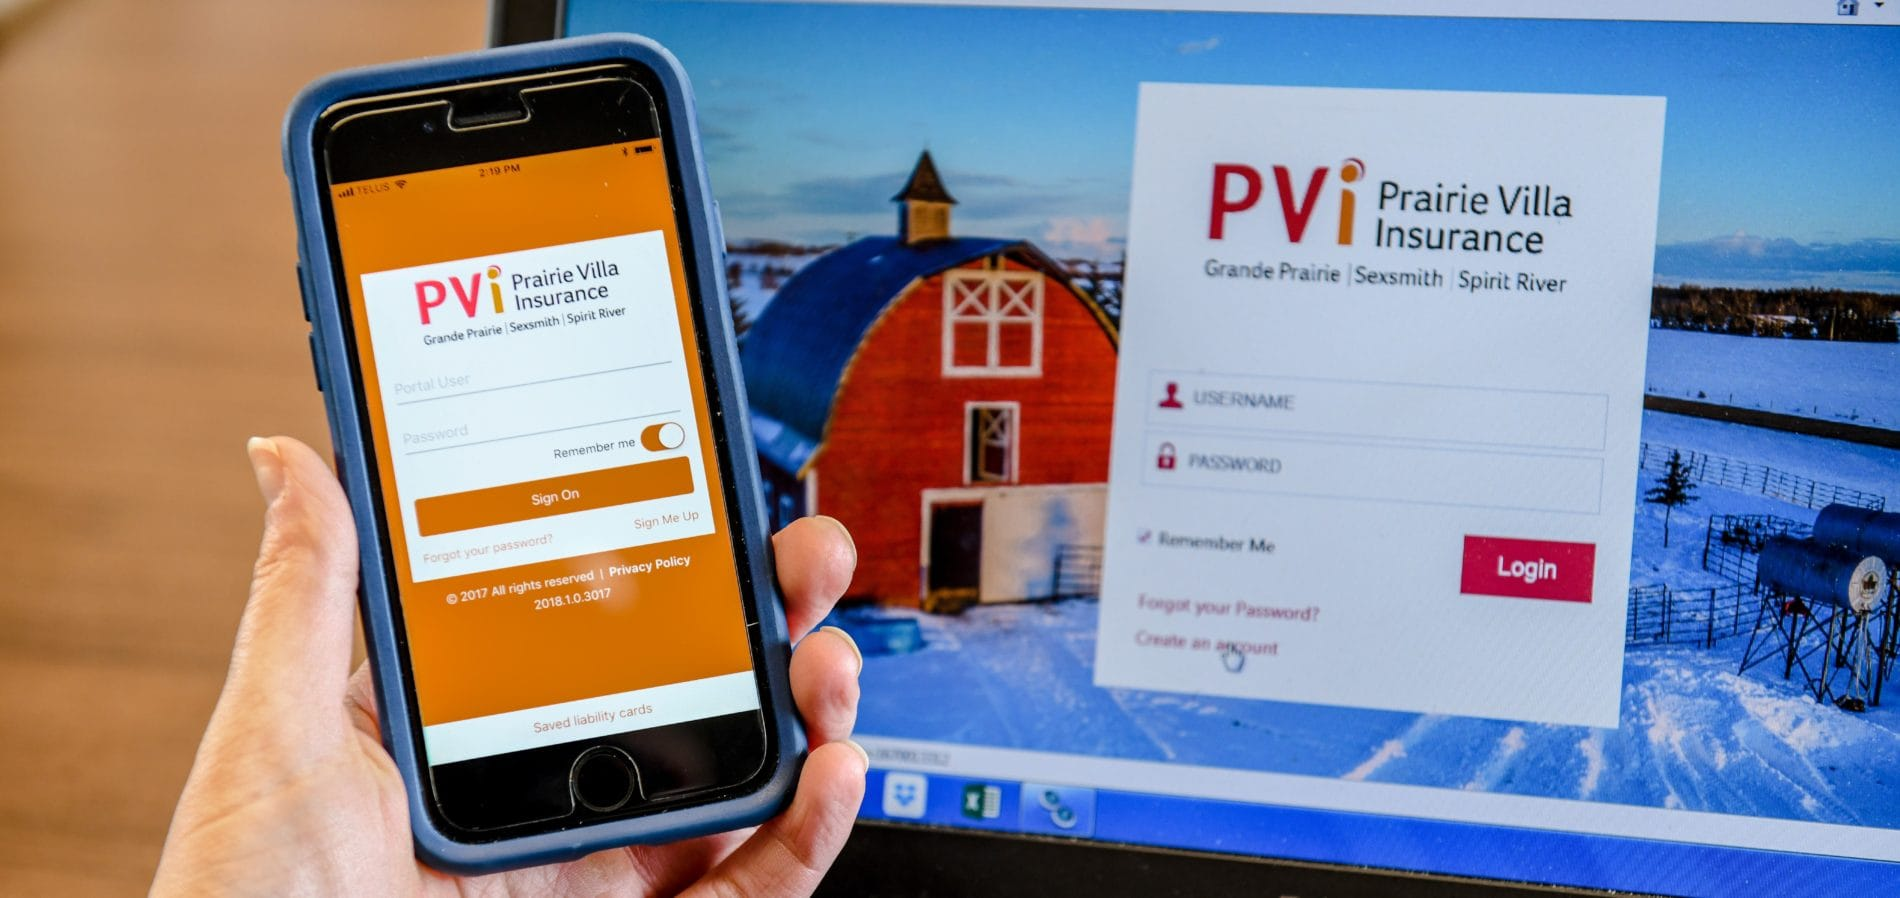 Client portal and My PVi app